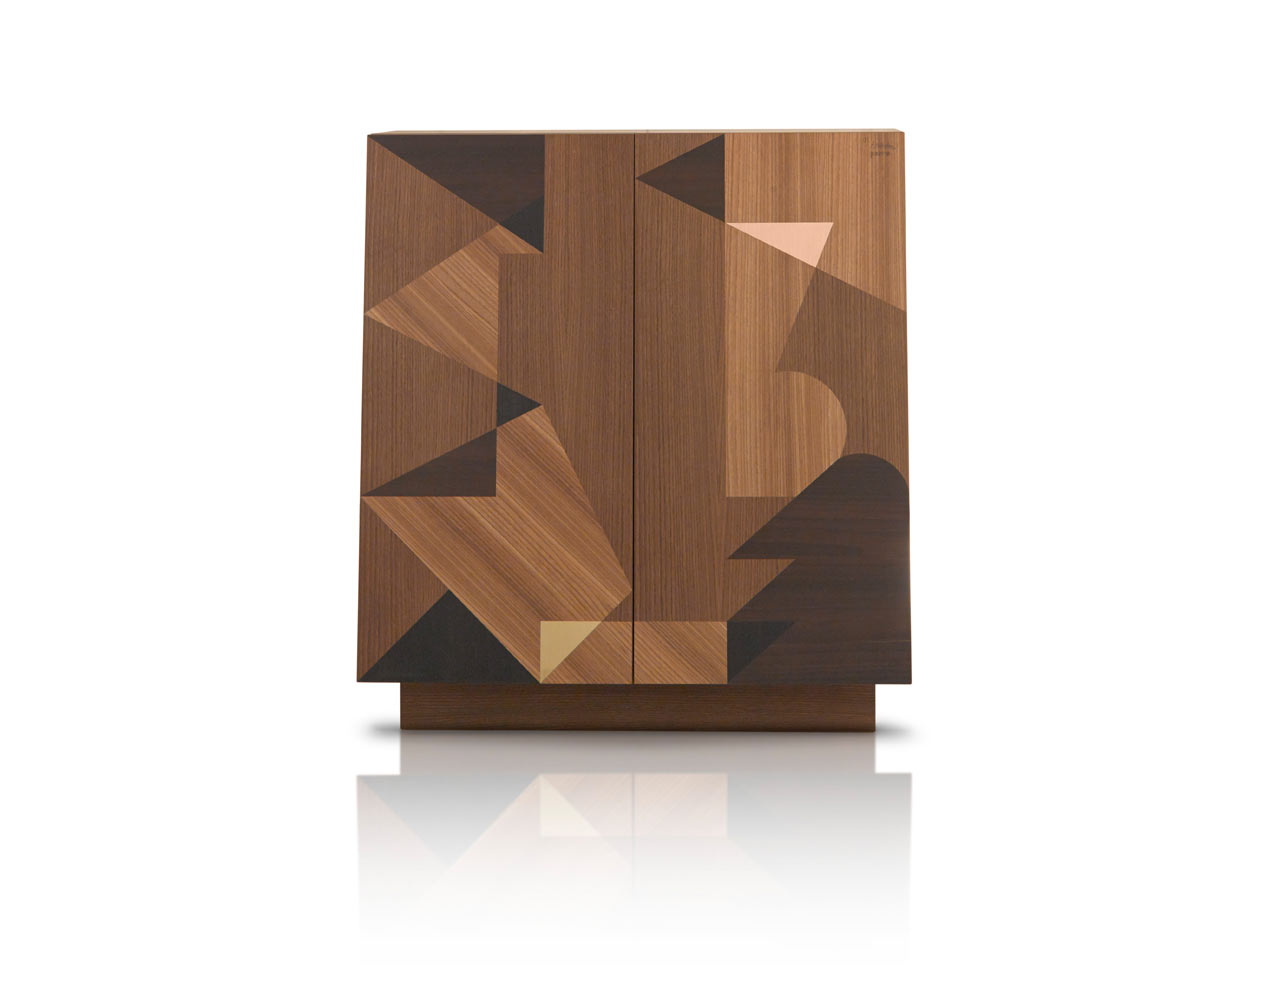 Storage with Geometric Wooden Inlays